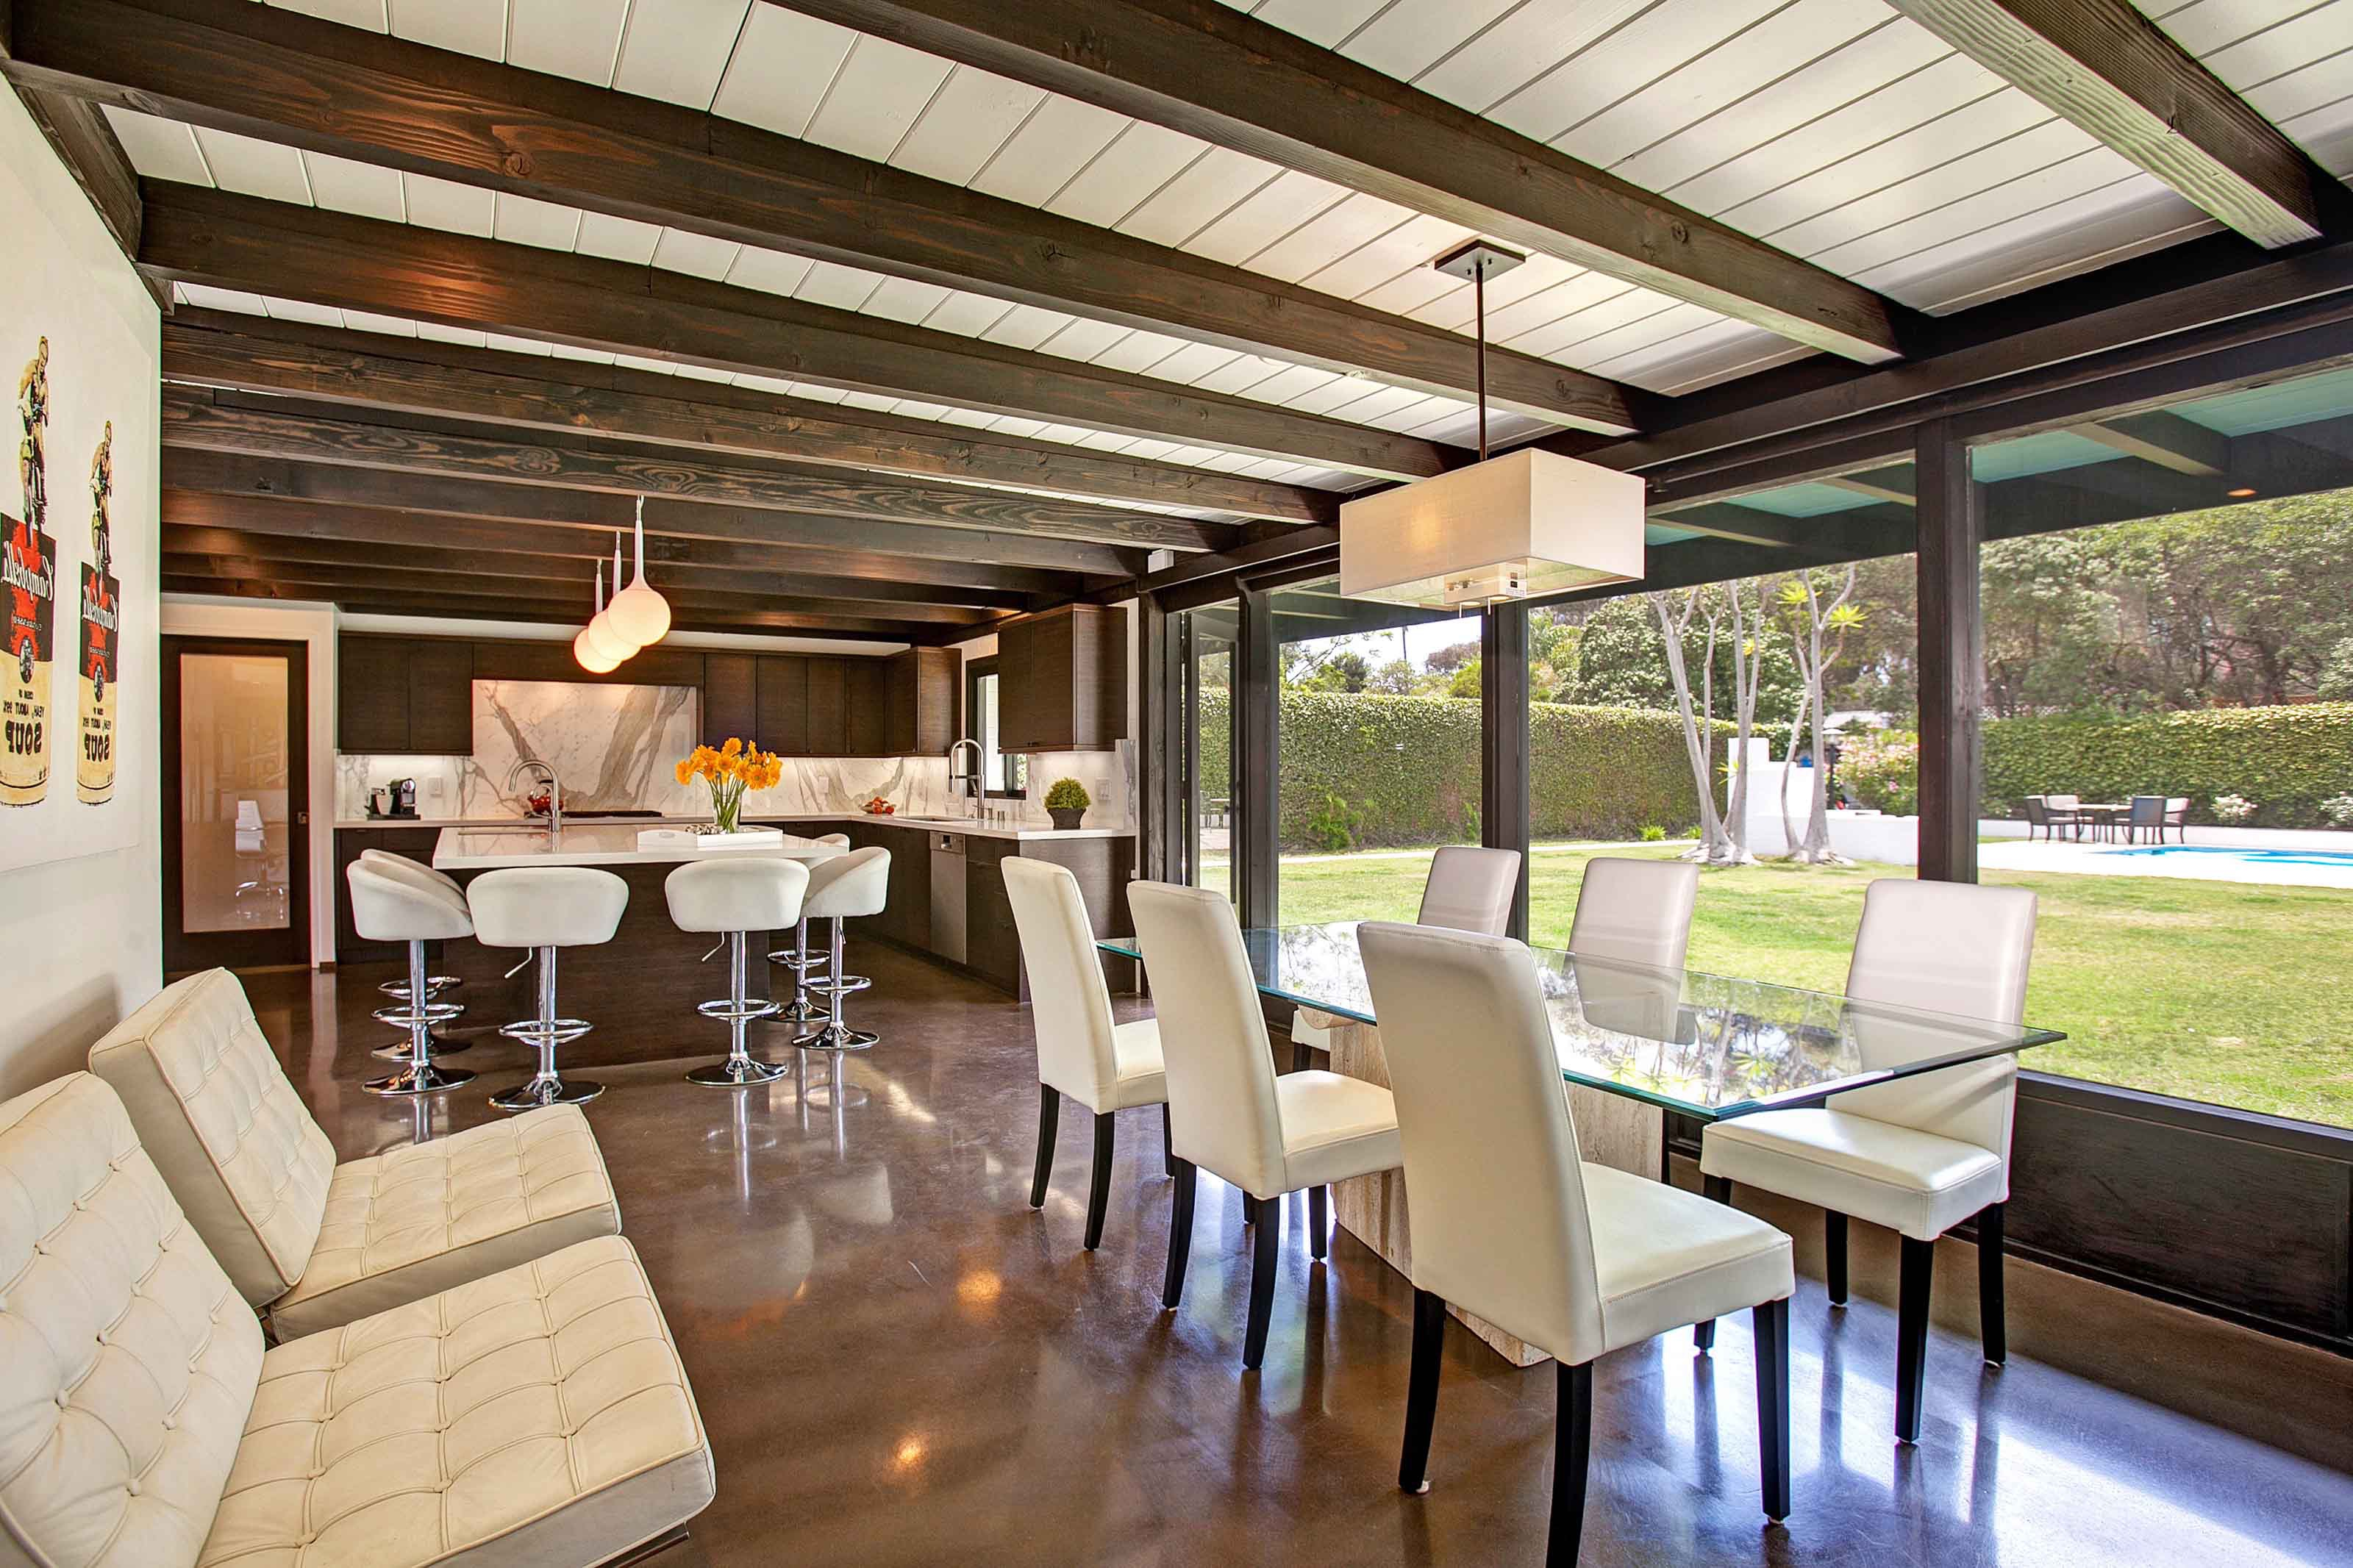 Modern White Paneled Ceiling With Exposed Wood Beams (View 22 of 31)